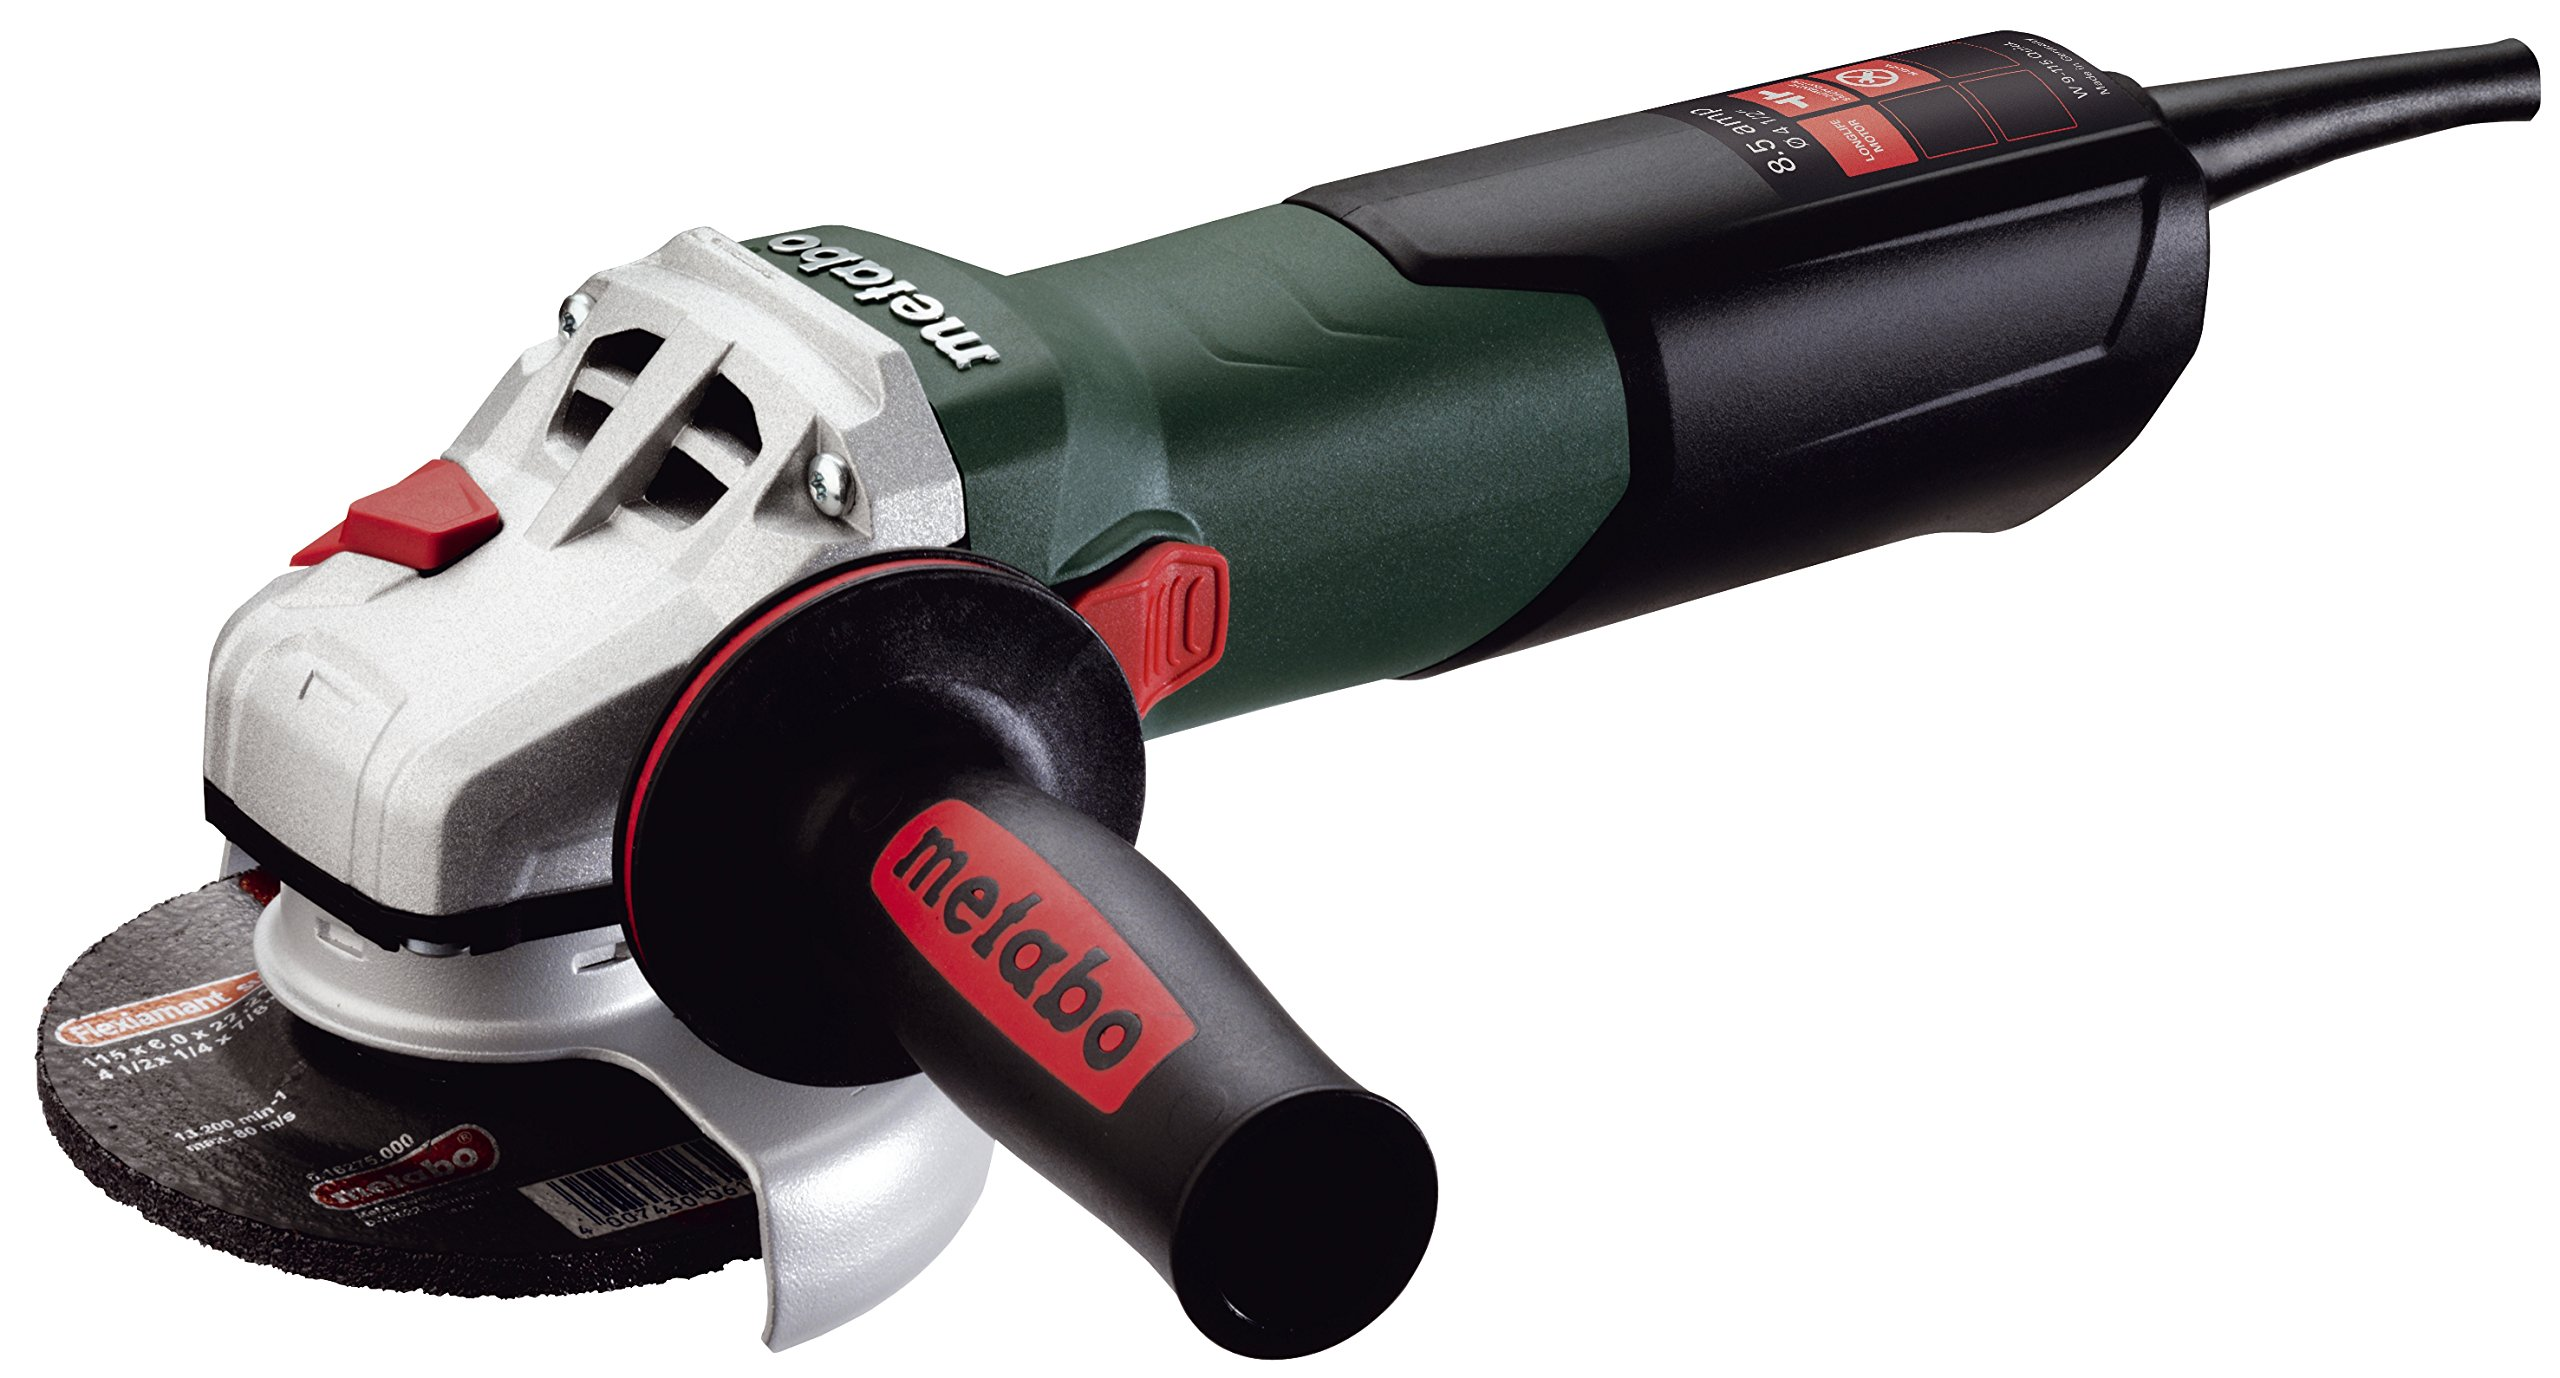 Metabo W9-115 Quick 8.5 Amp 10,500 rpm Angle Grinder with Lock-On Sliding Switch, 4-1/2''